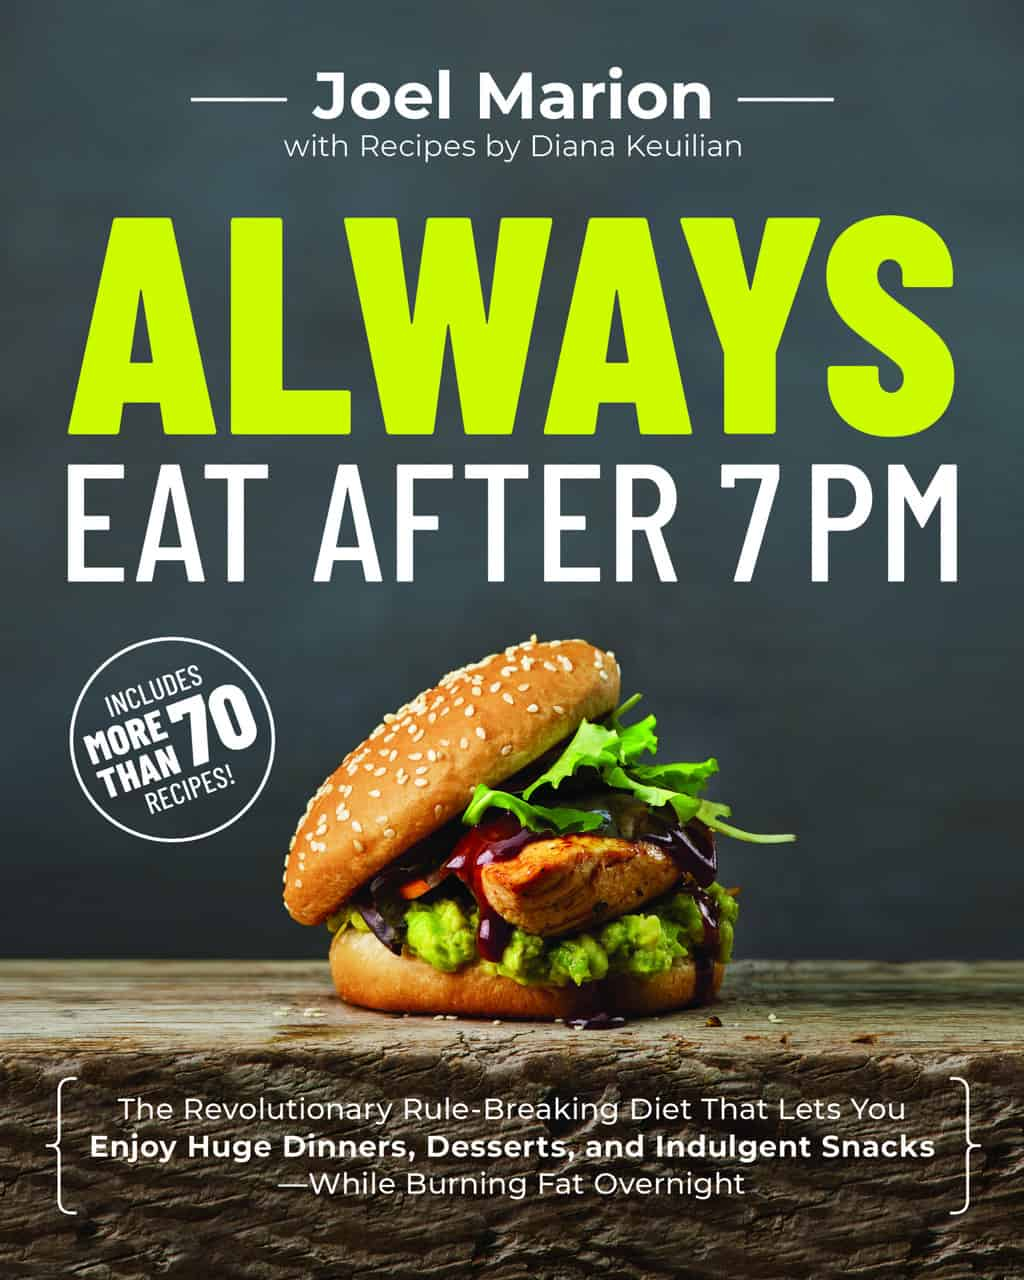 "Cover shot of book ""ALWAYS EAT AFTER 7 PM"" by Joel Marion"